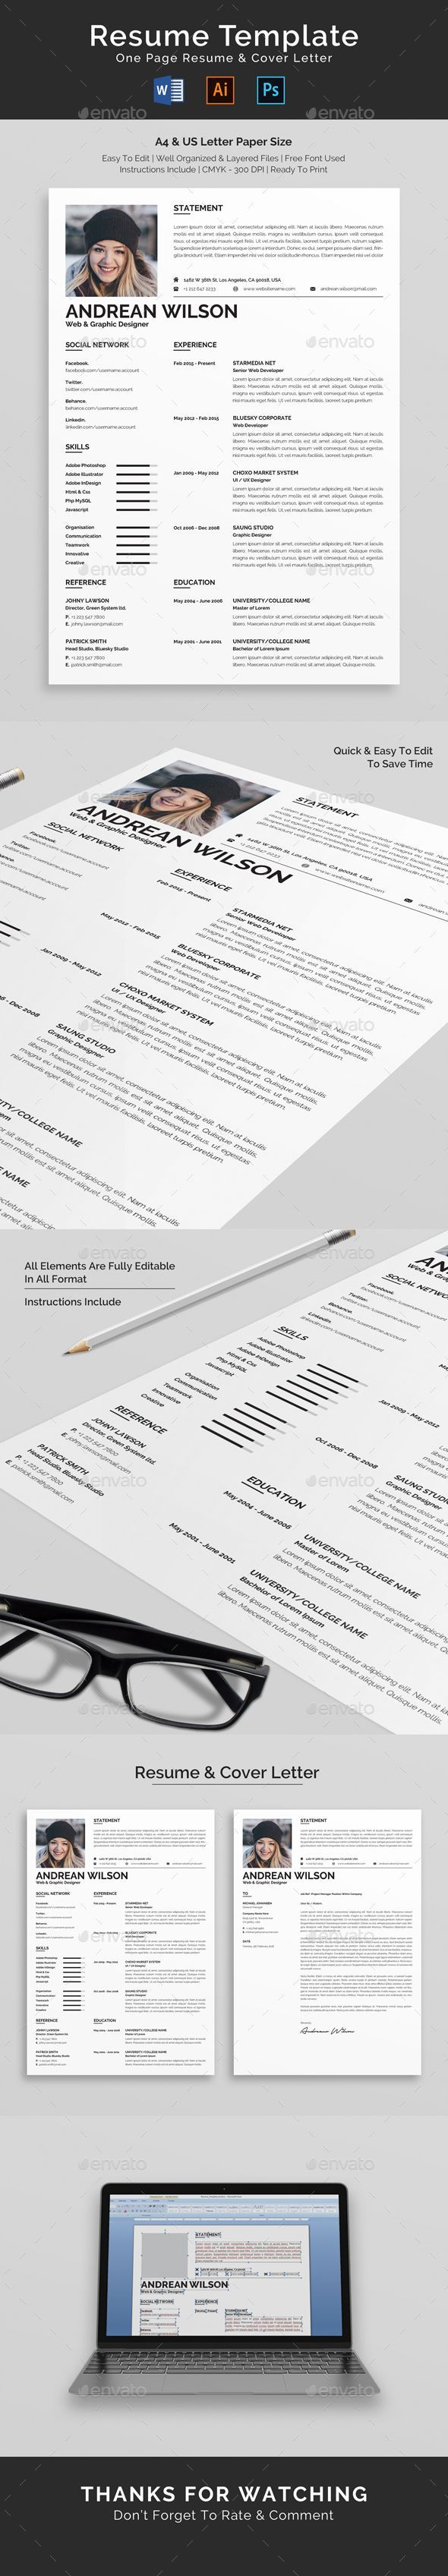 Resume The 26 best Resume Template images